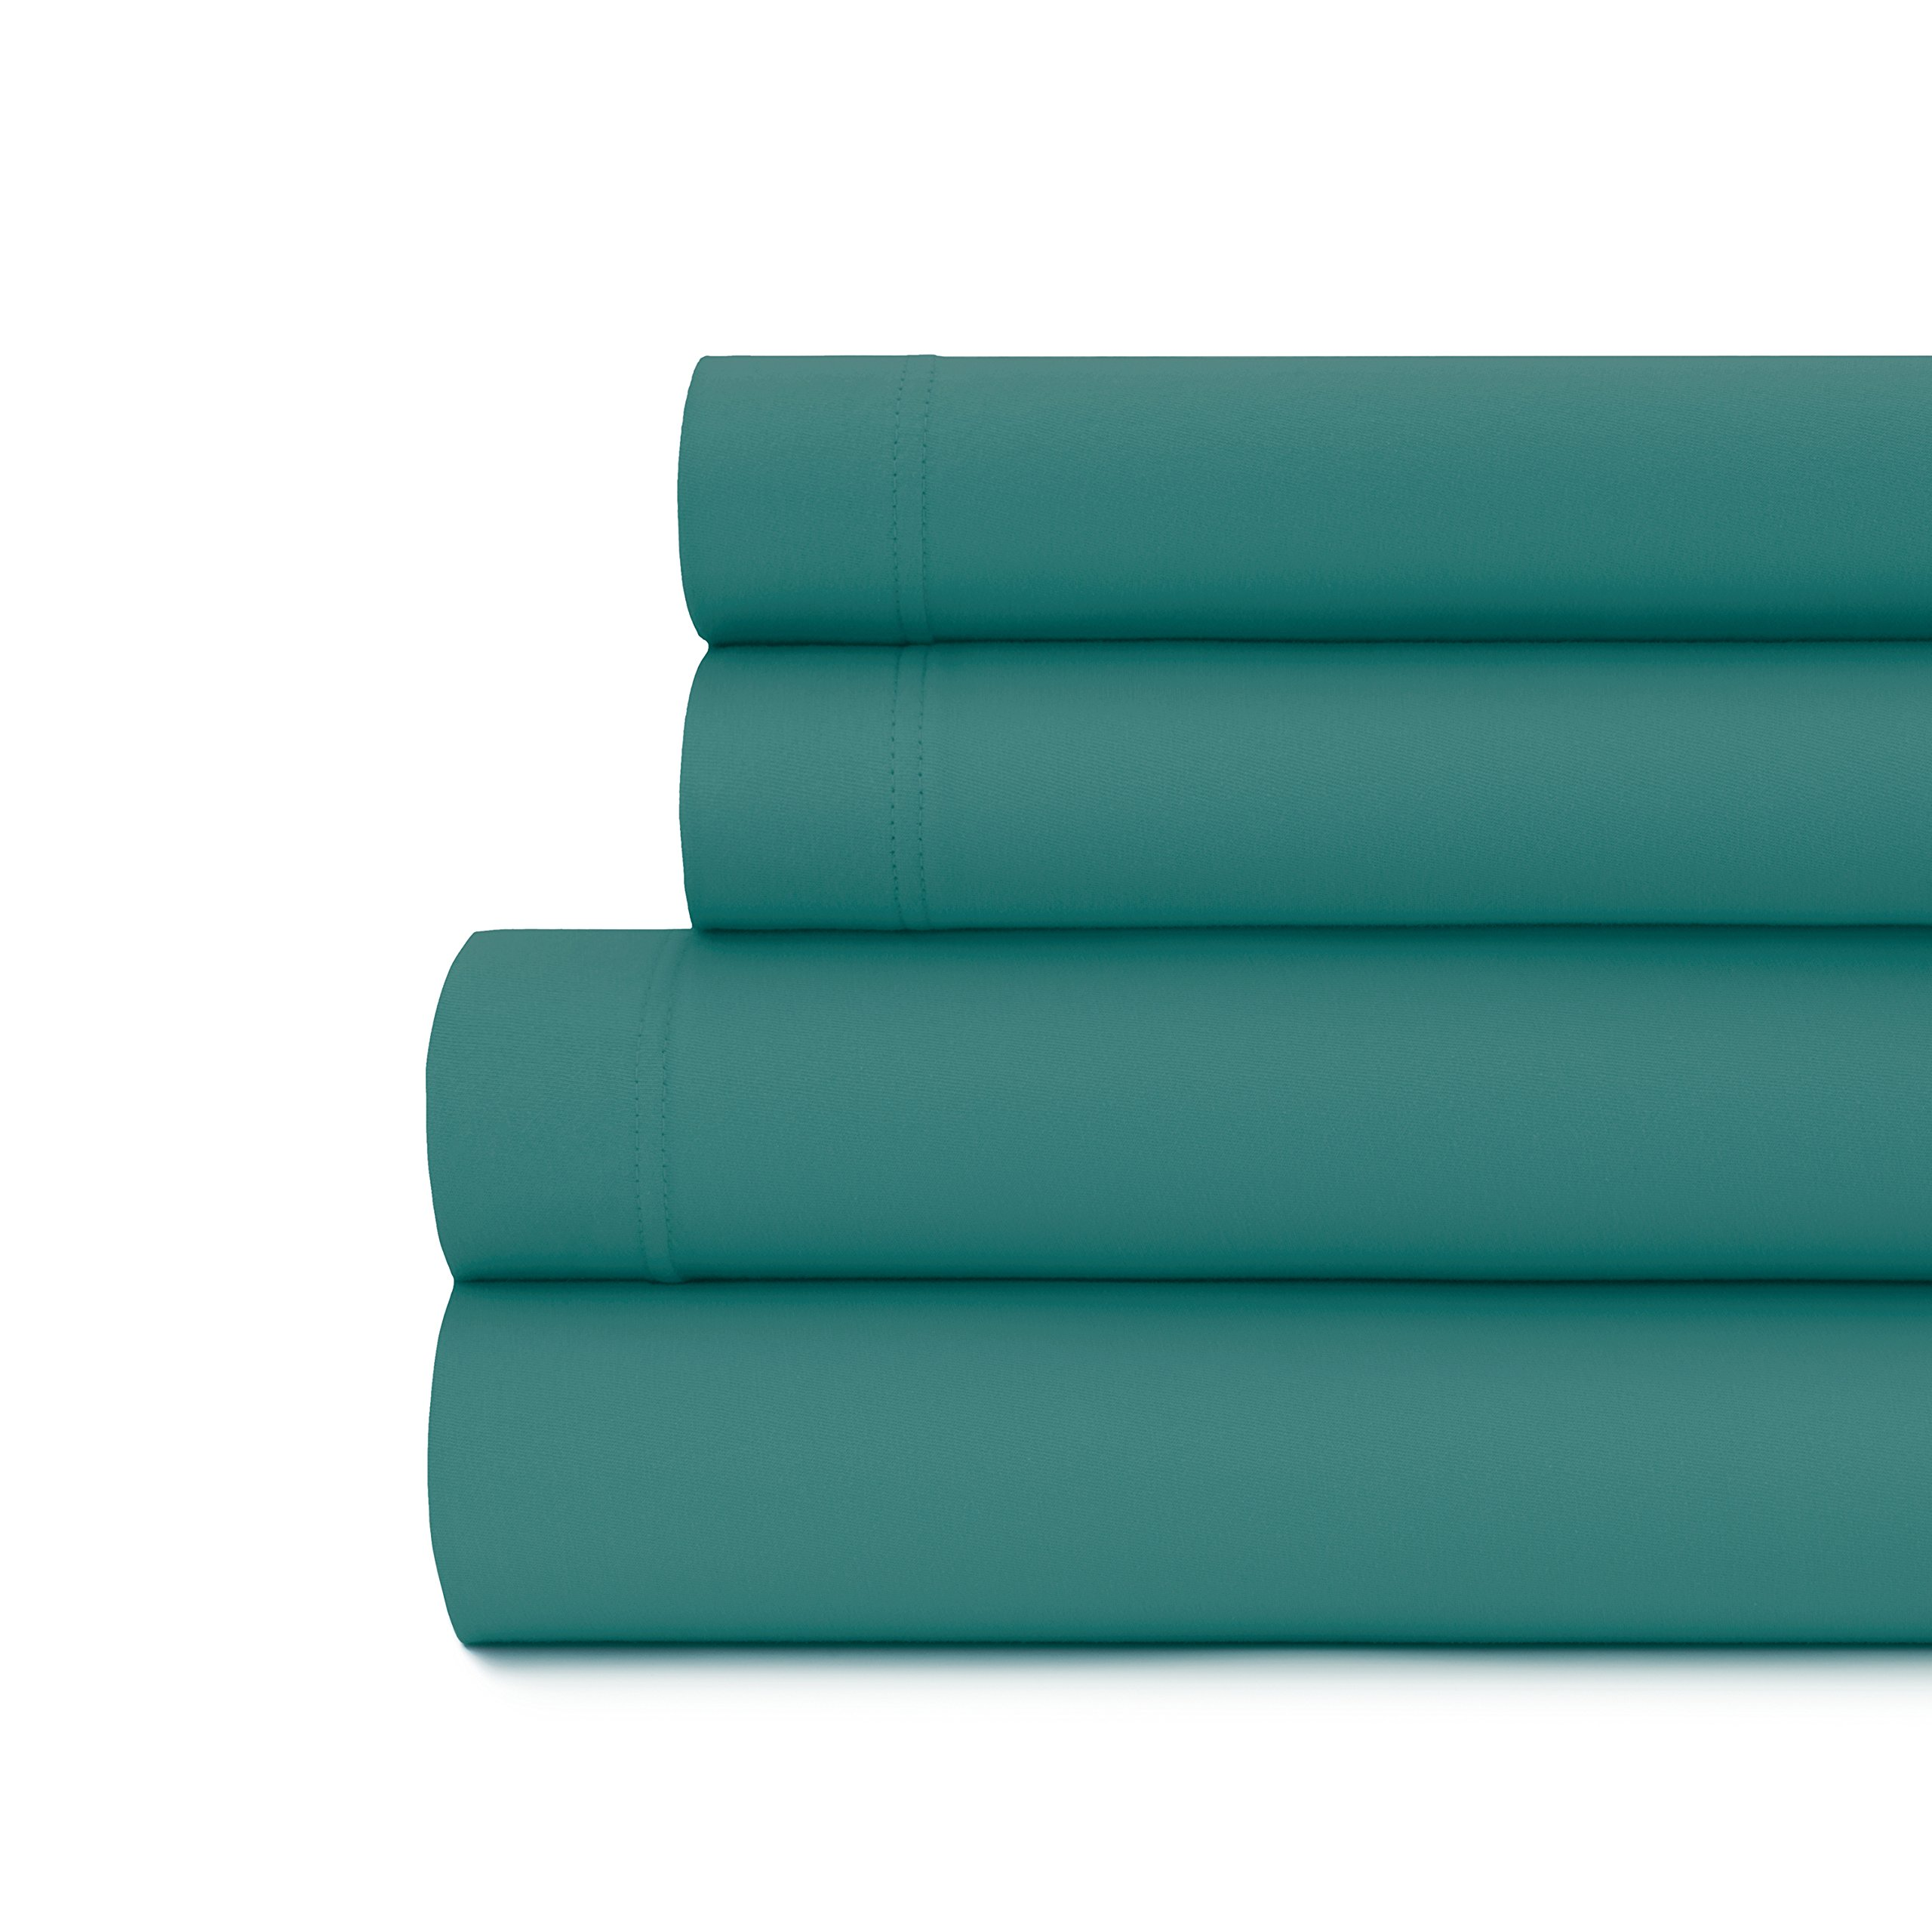 Briarwood Home Cal King Size Jersey Knit Sheet Set - 4 Pc Super Soft 100% Cotton Breathable Bed Sheets – Deep Pocket, Easy Fit – Comfortable, Cozy T-Shirt Soft – All Season Bedding (Cal King, Teal)